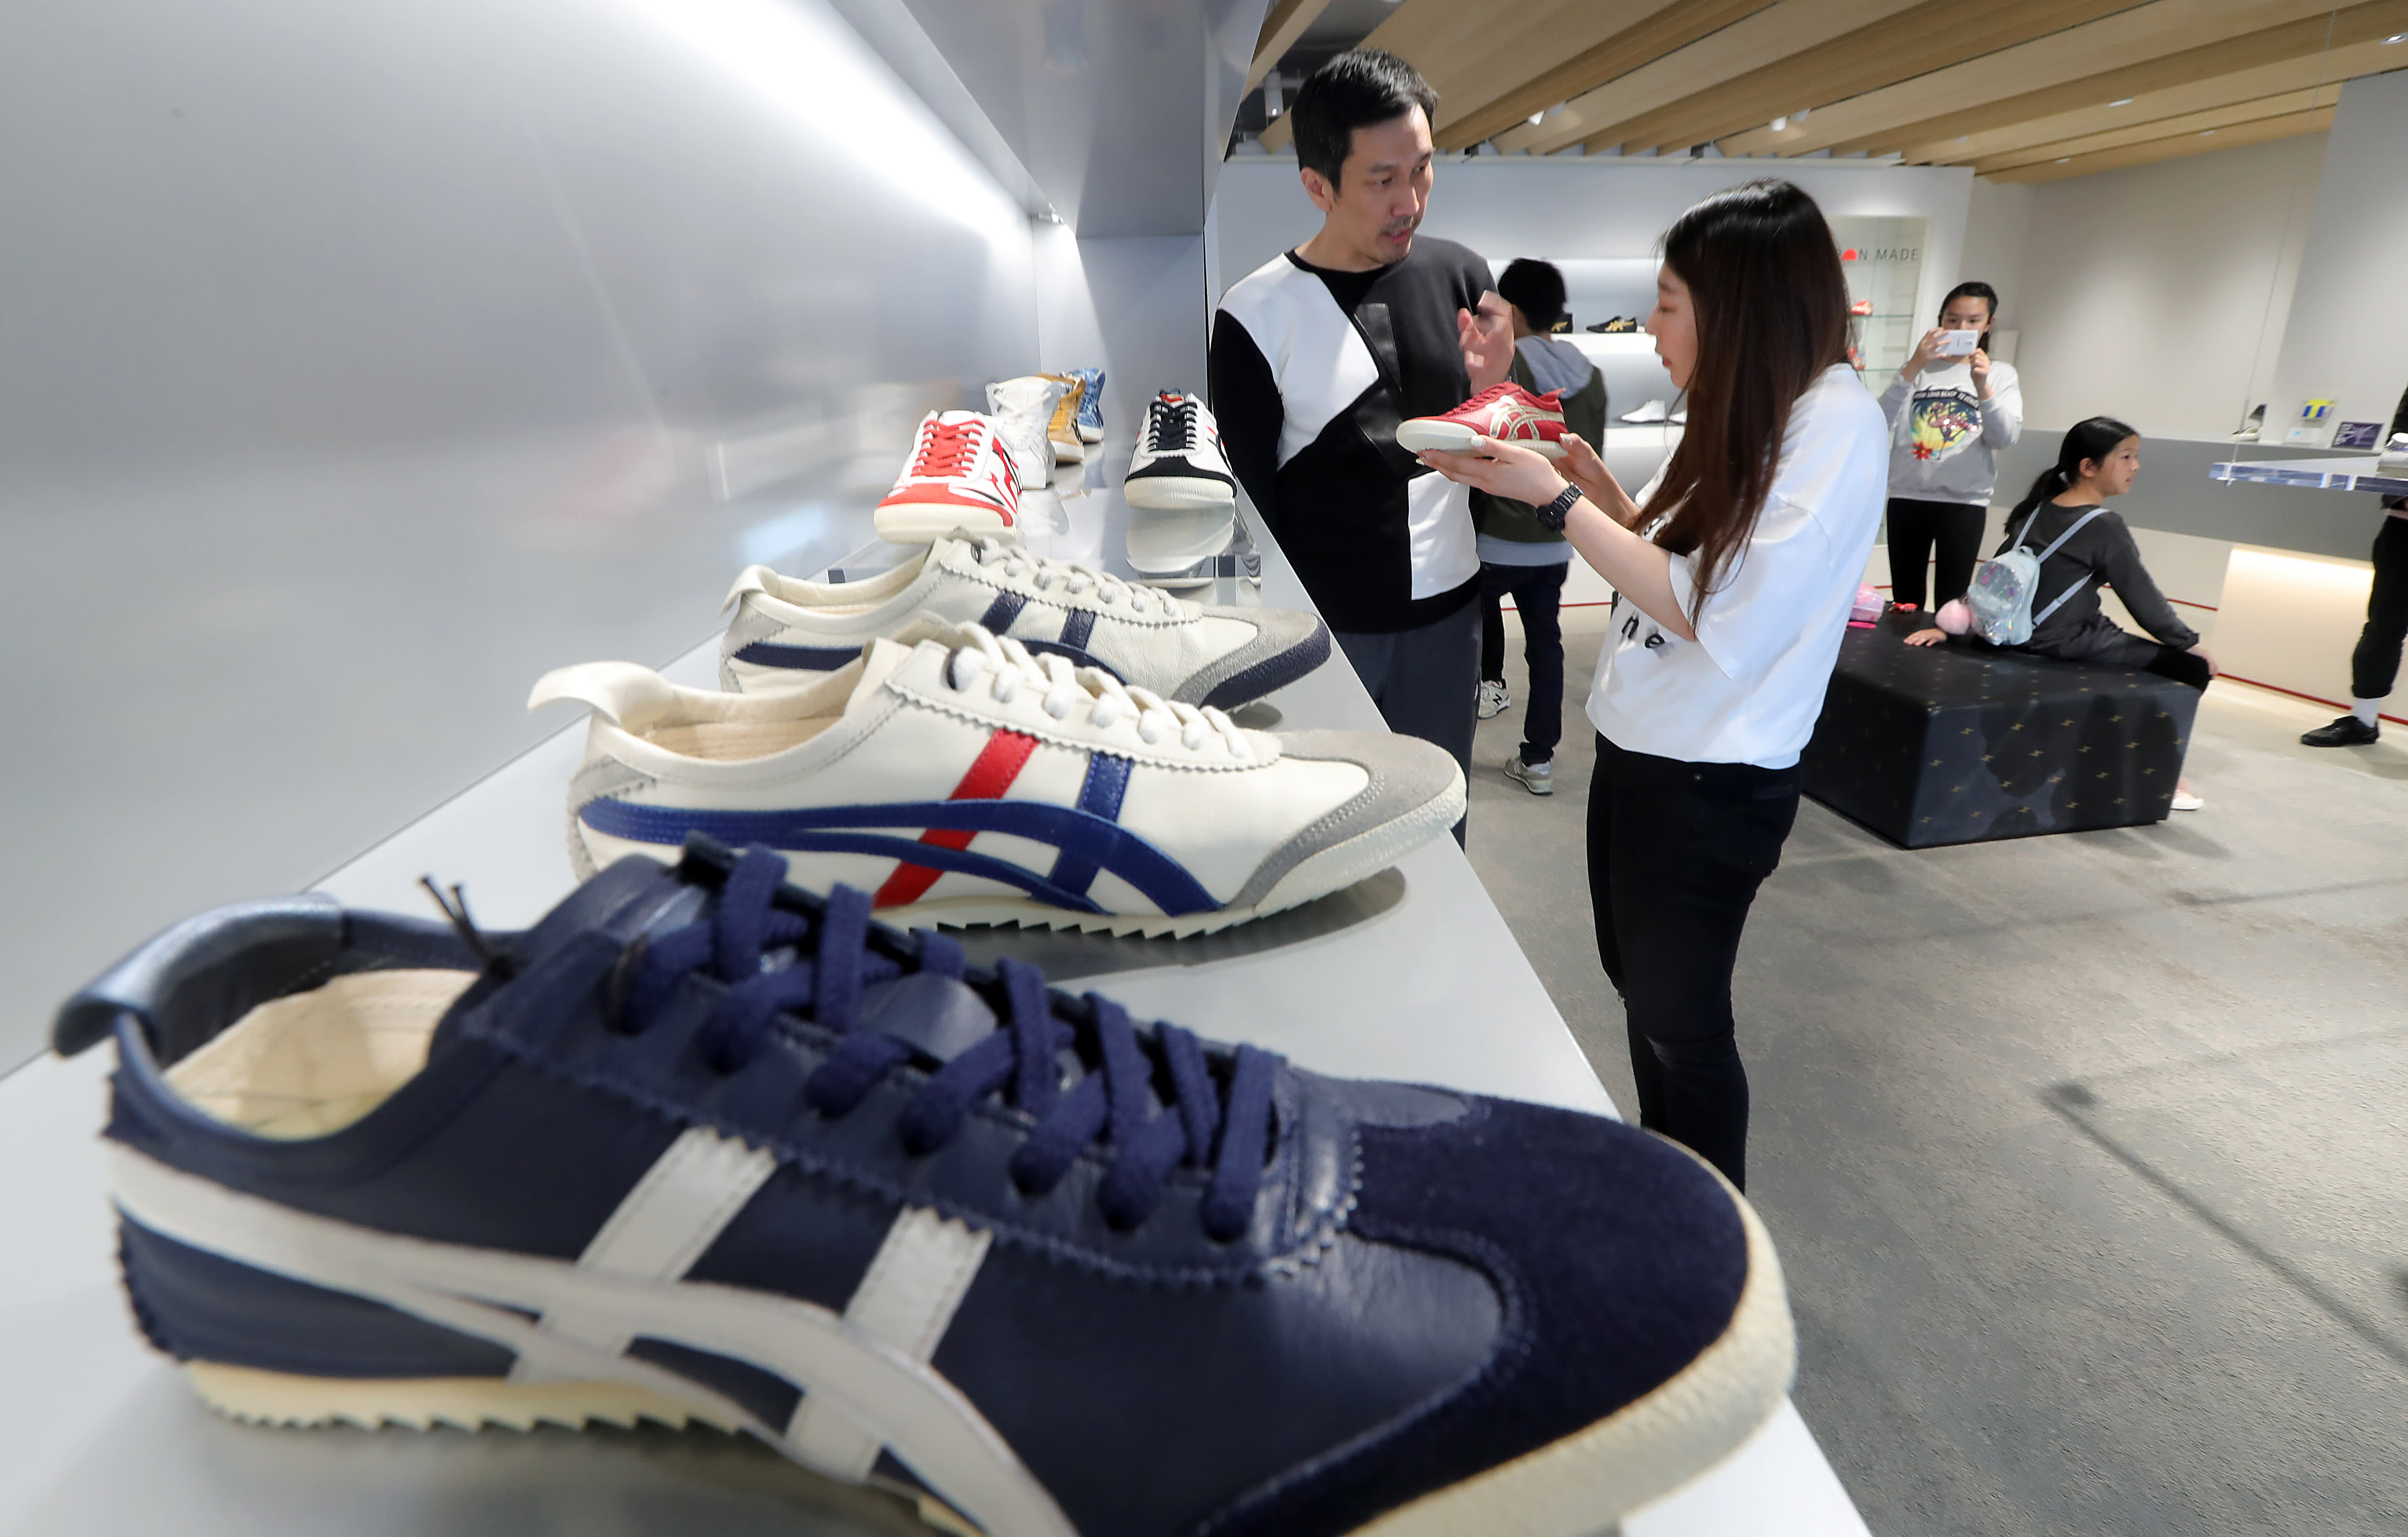 4405202be23f5 Made-in-Japan footwear puts spring in Asics' step - Nikkei Asian Review